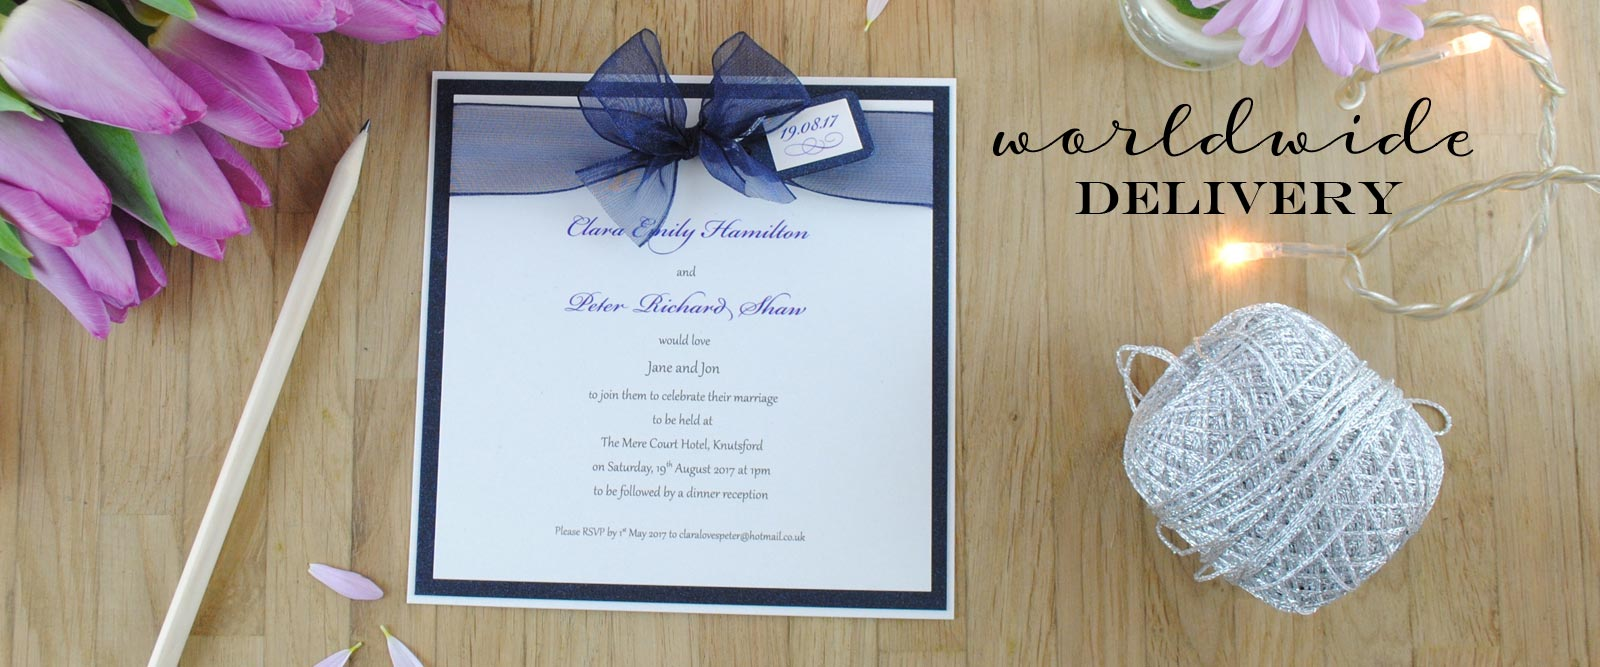 Wedding Invitation Boutique